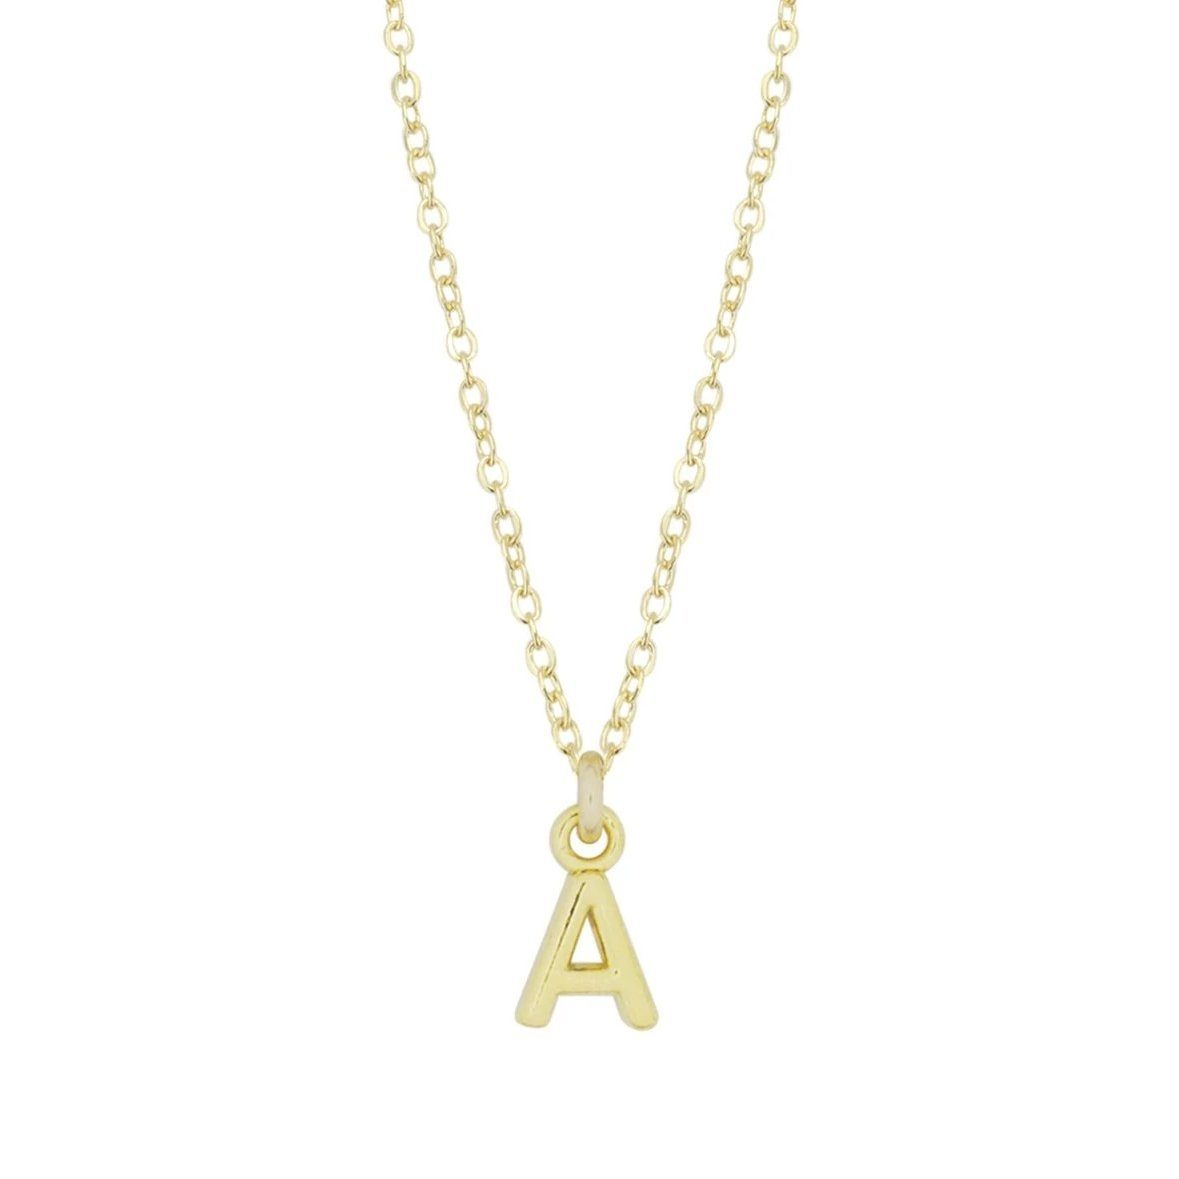 Up close image of the gold Initial Necklace with an 'A' pendant.